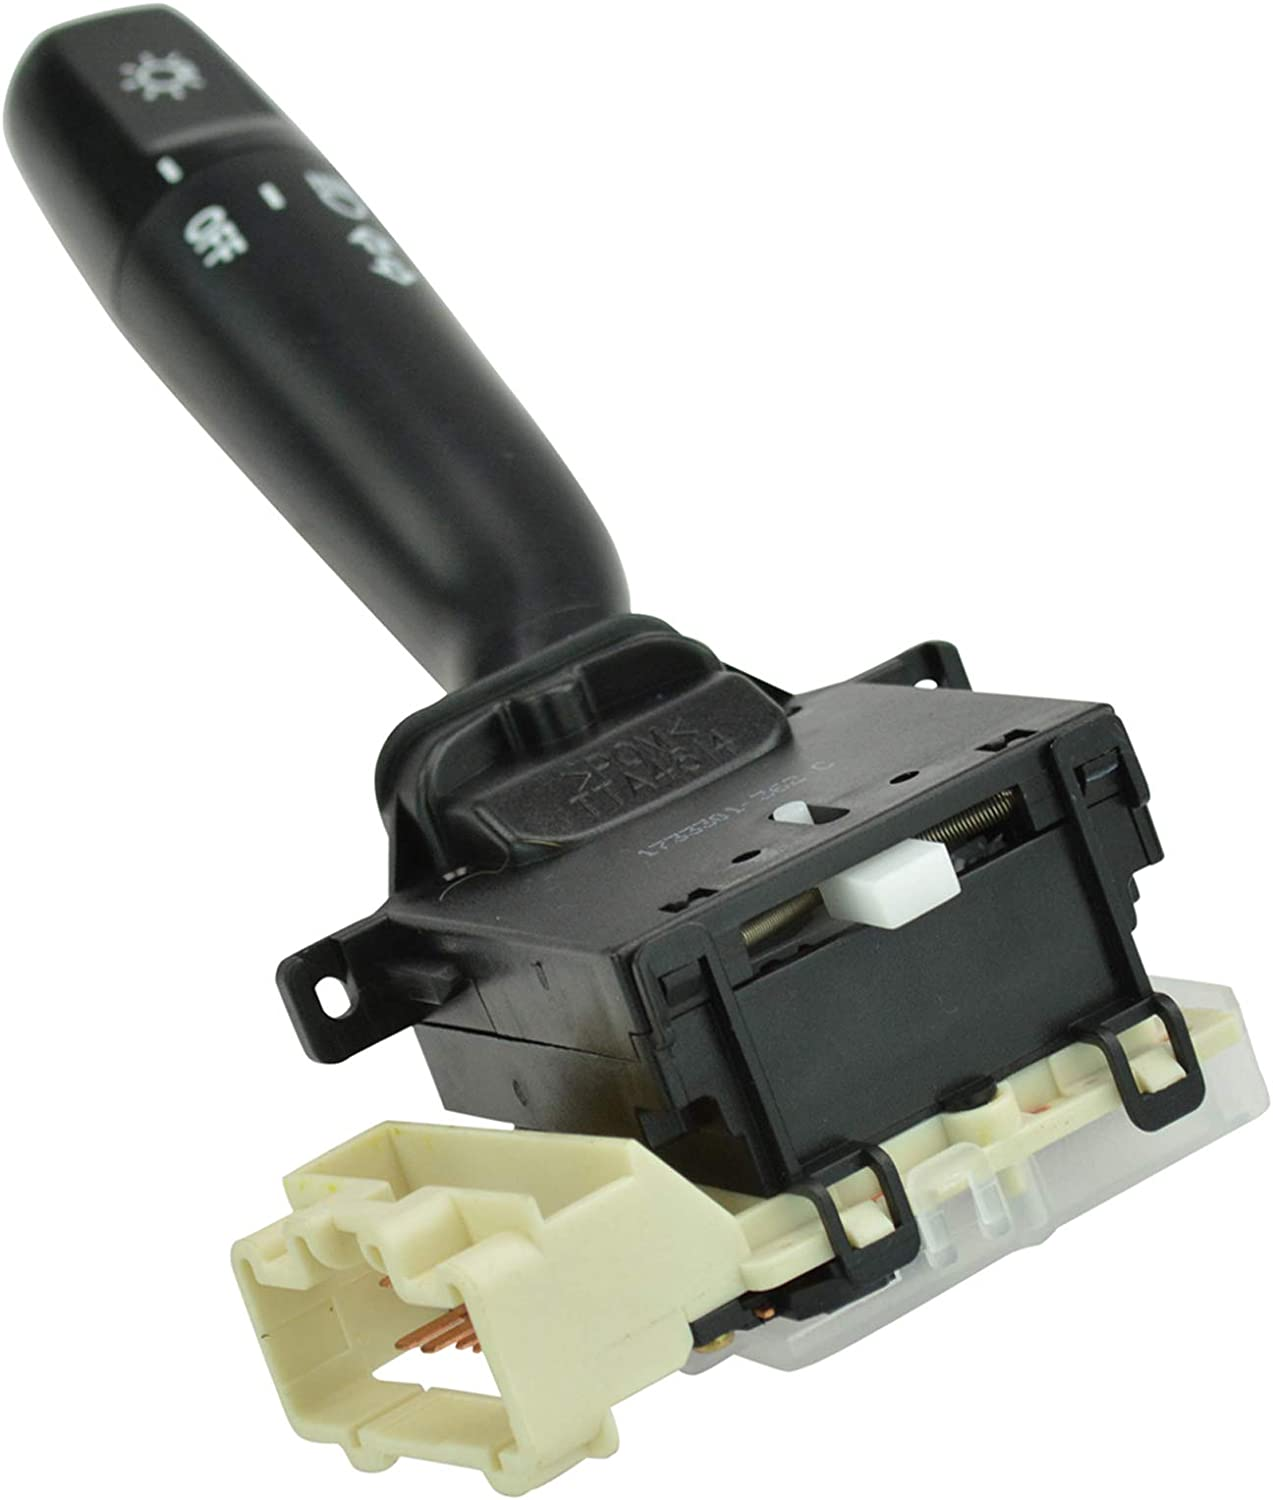 1A Auto Headlight Turn Signal Combination Switch for 4Runner Avalon Camry Celica Prius